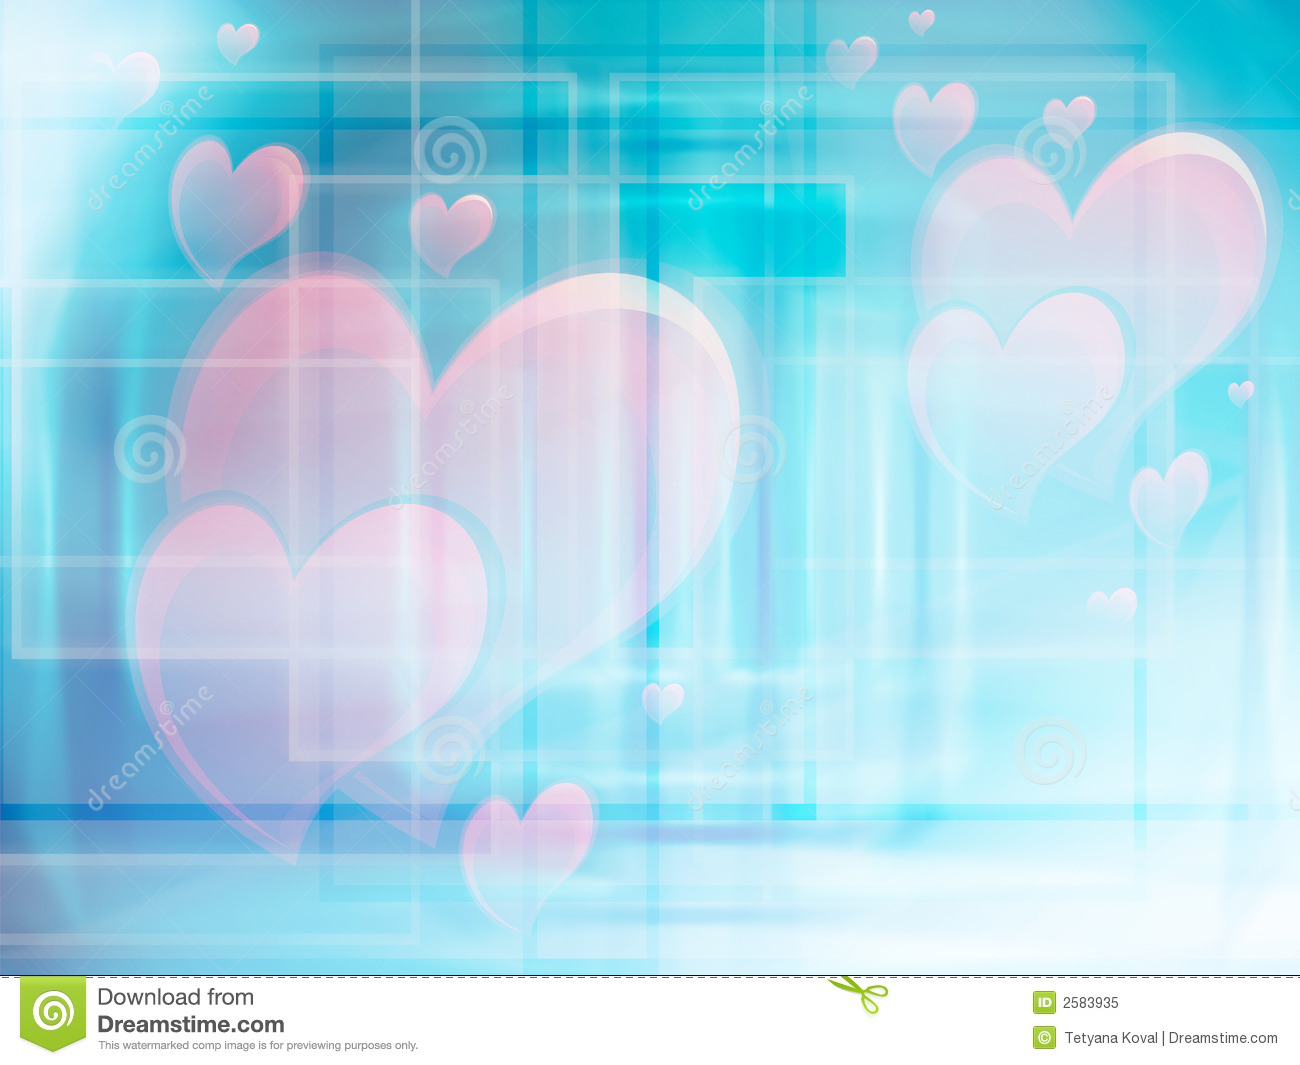 Love Backround Royalty Free Stock Photo - Image: 2583935